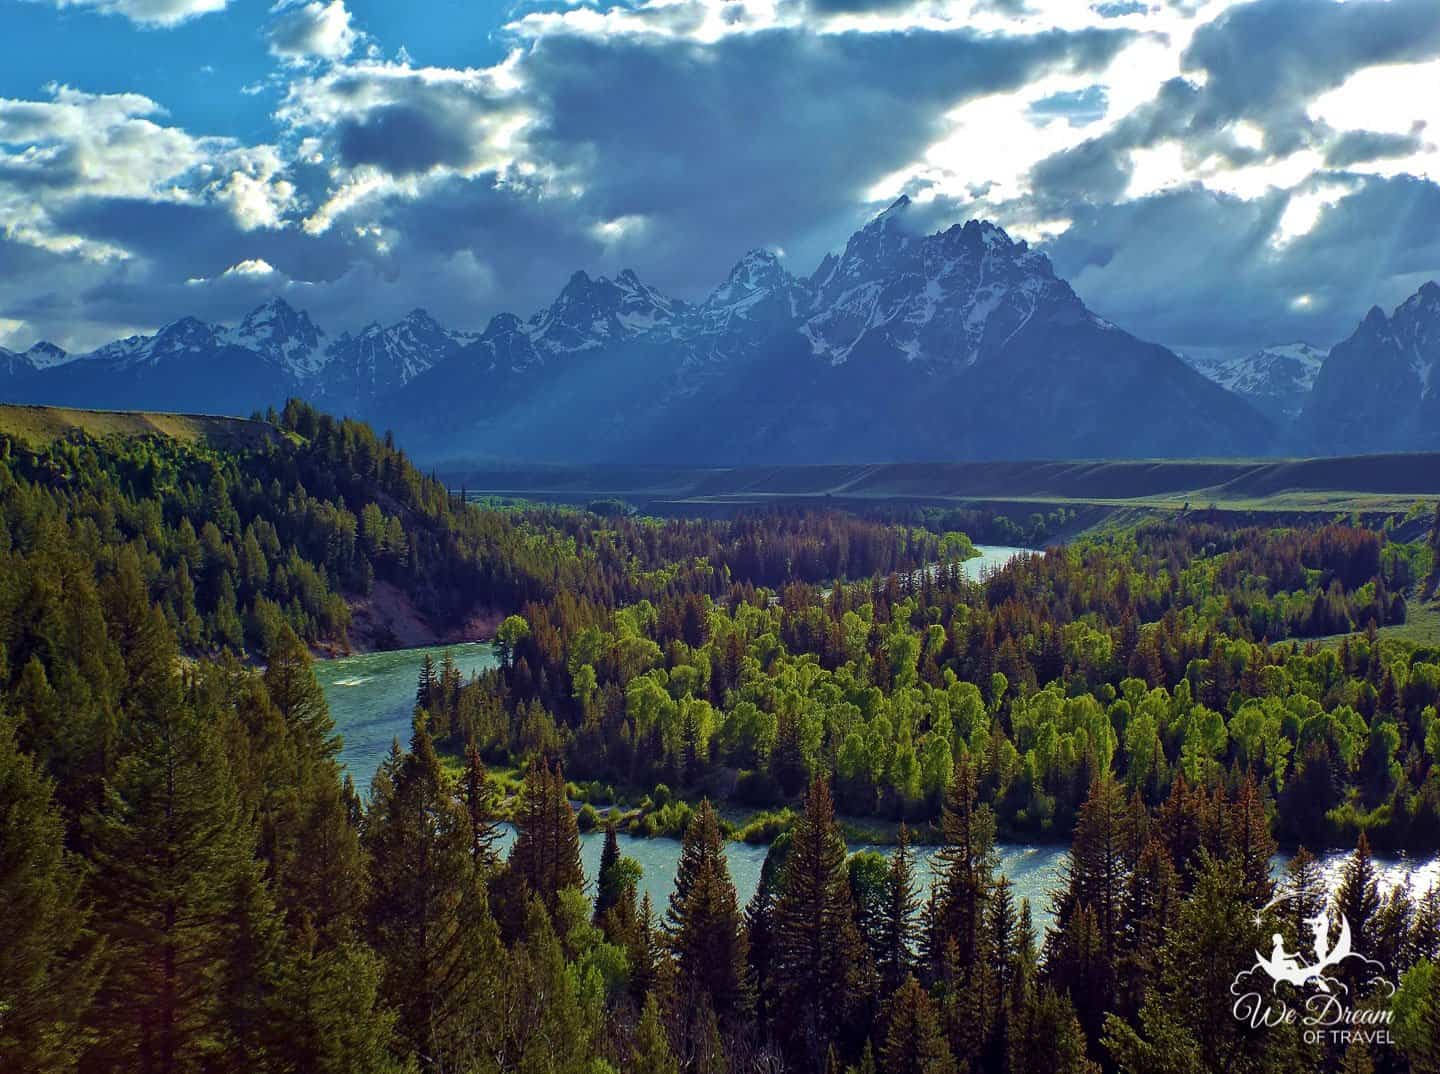 The Snake River Bend lookout remains one of the most popular photography dream destinations.